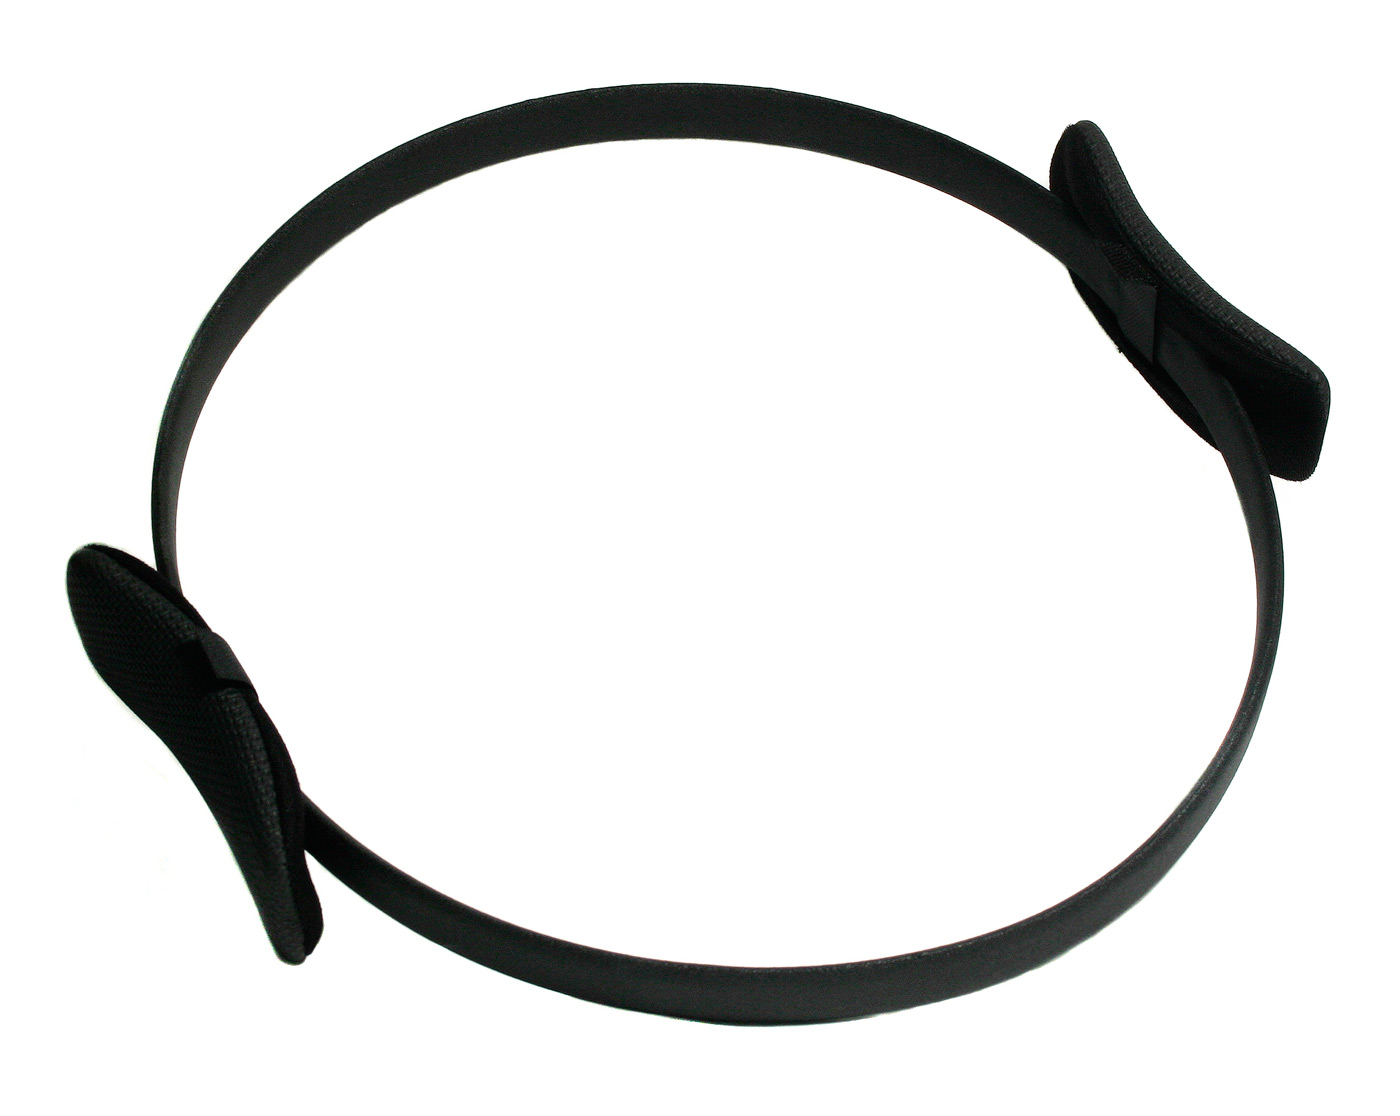 Pilates Ring - Metall - rutschfest